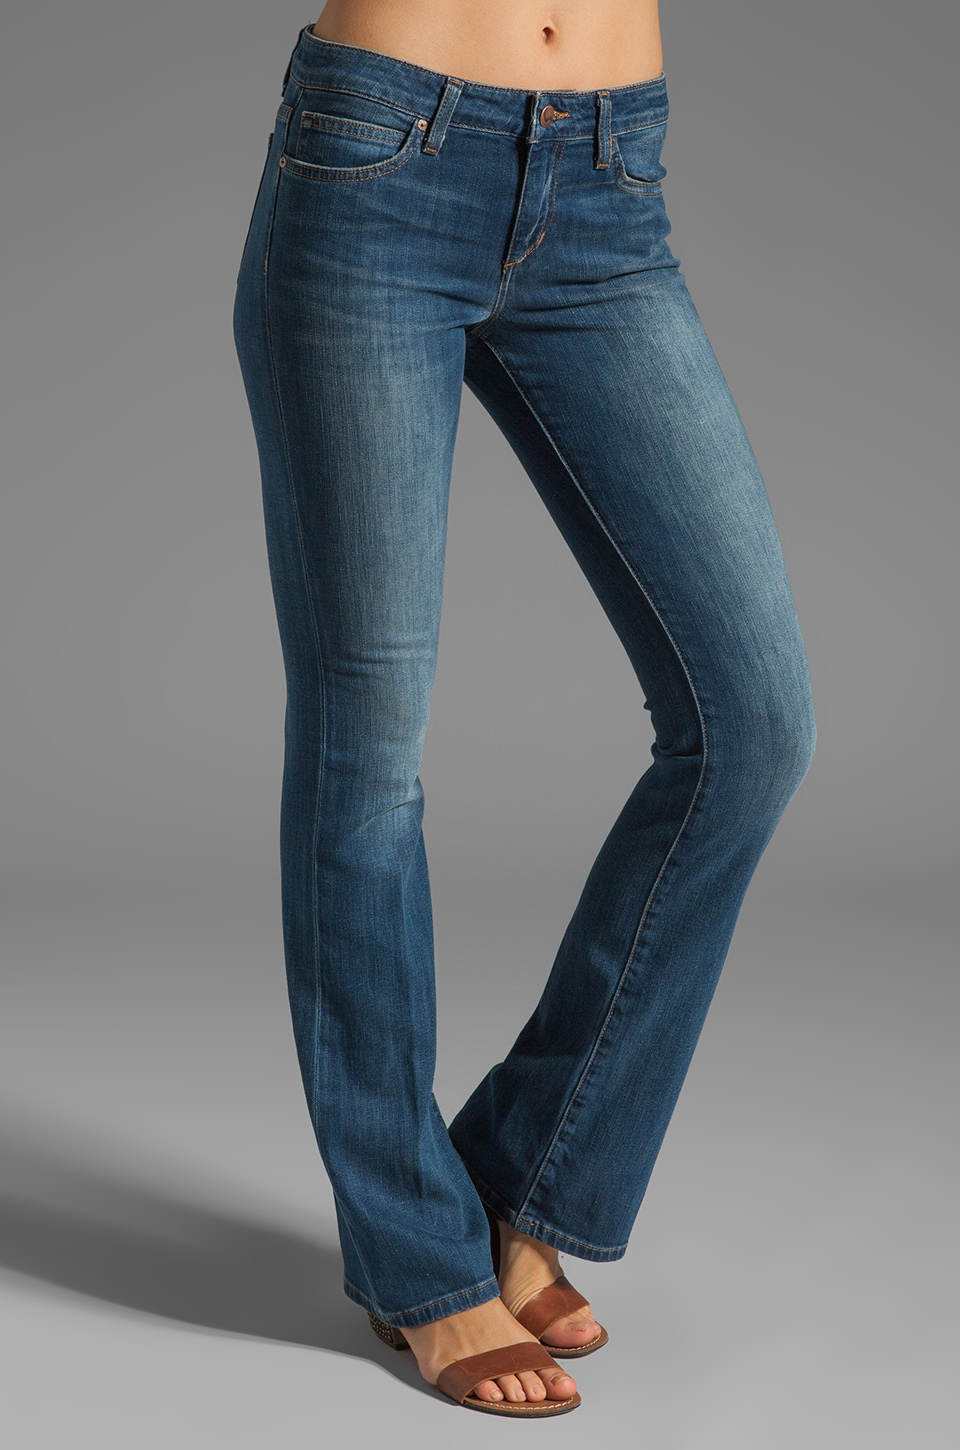 Joe's Jeans Bootcut in Melodie